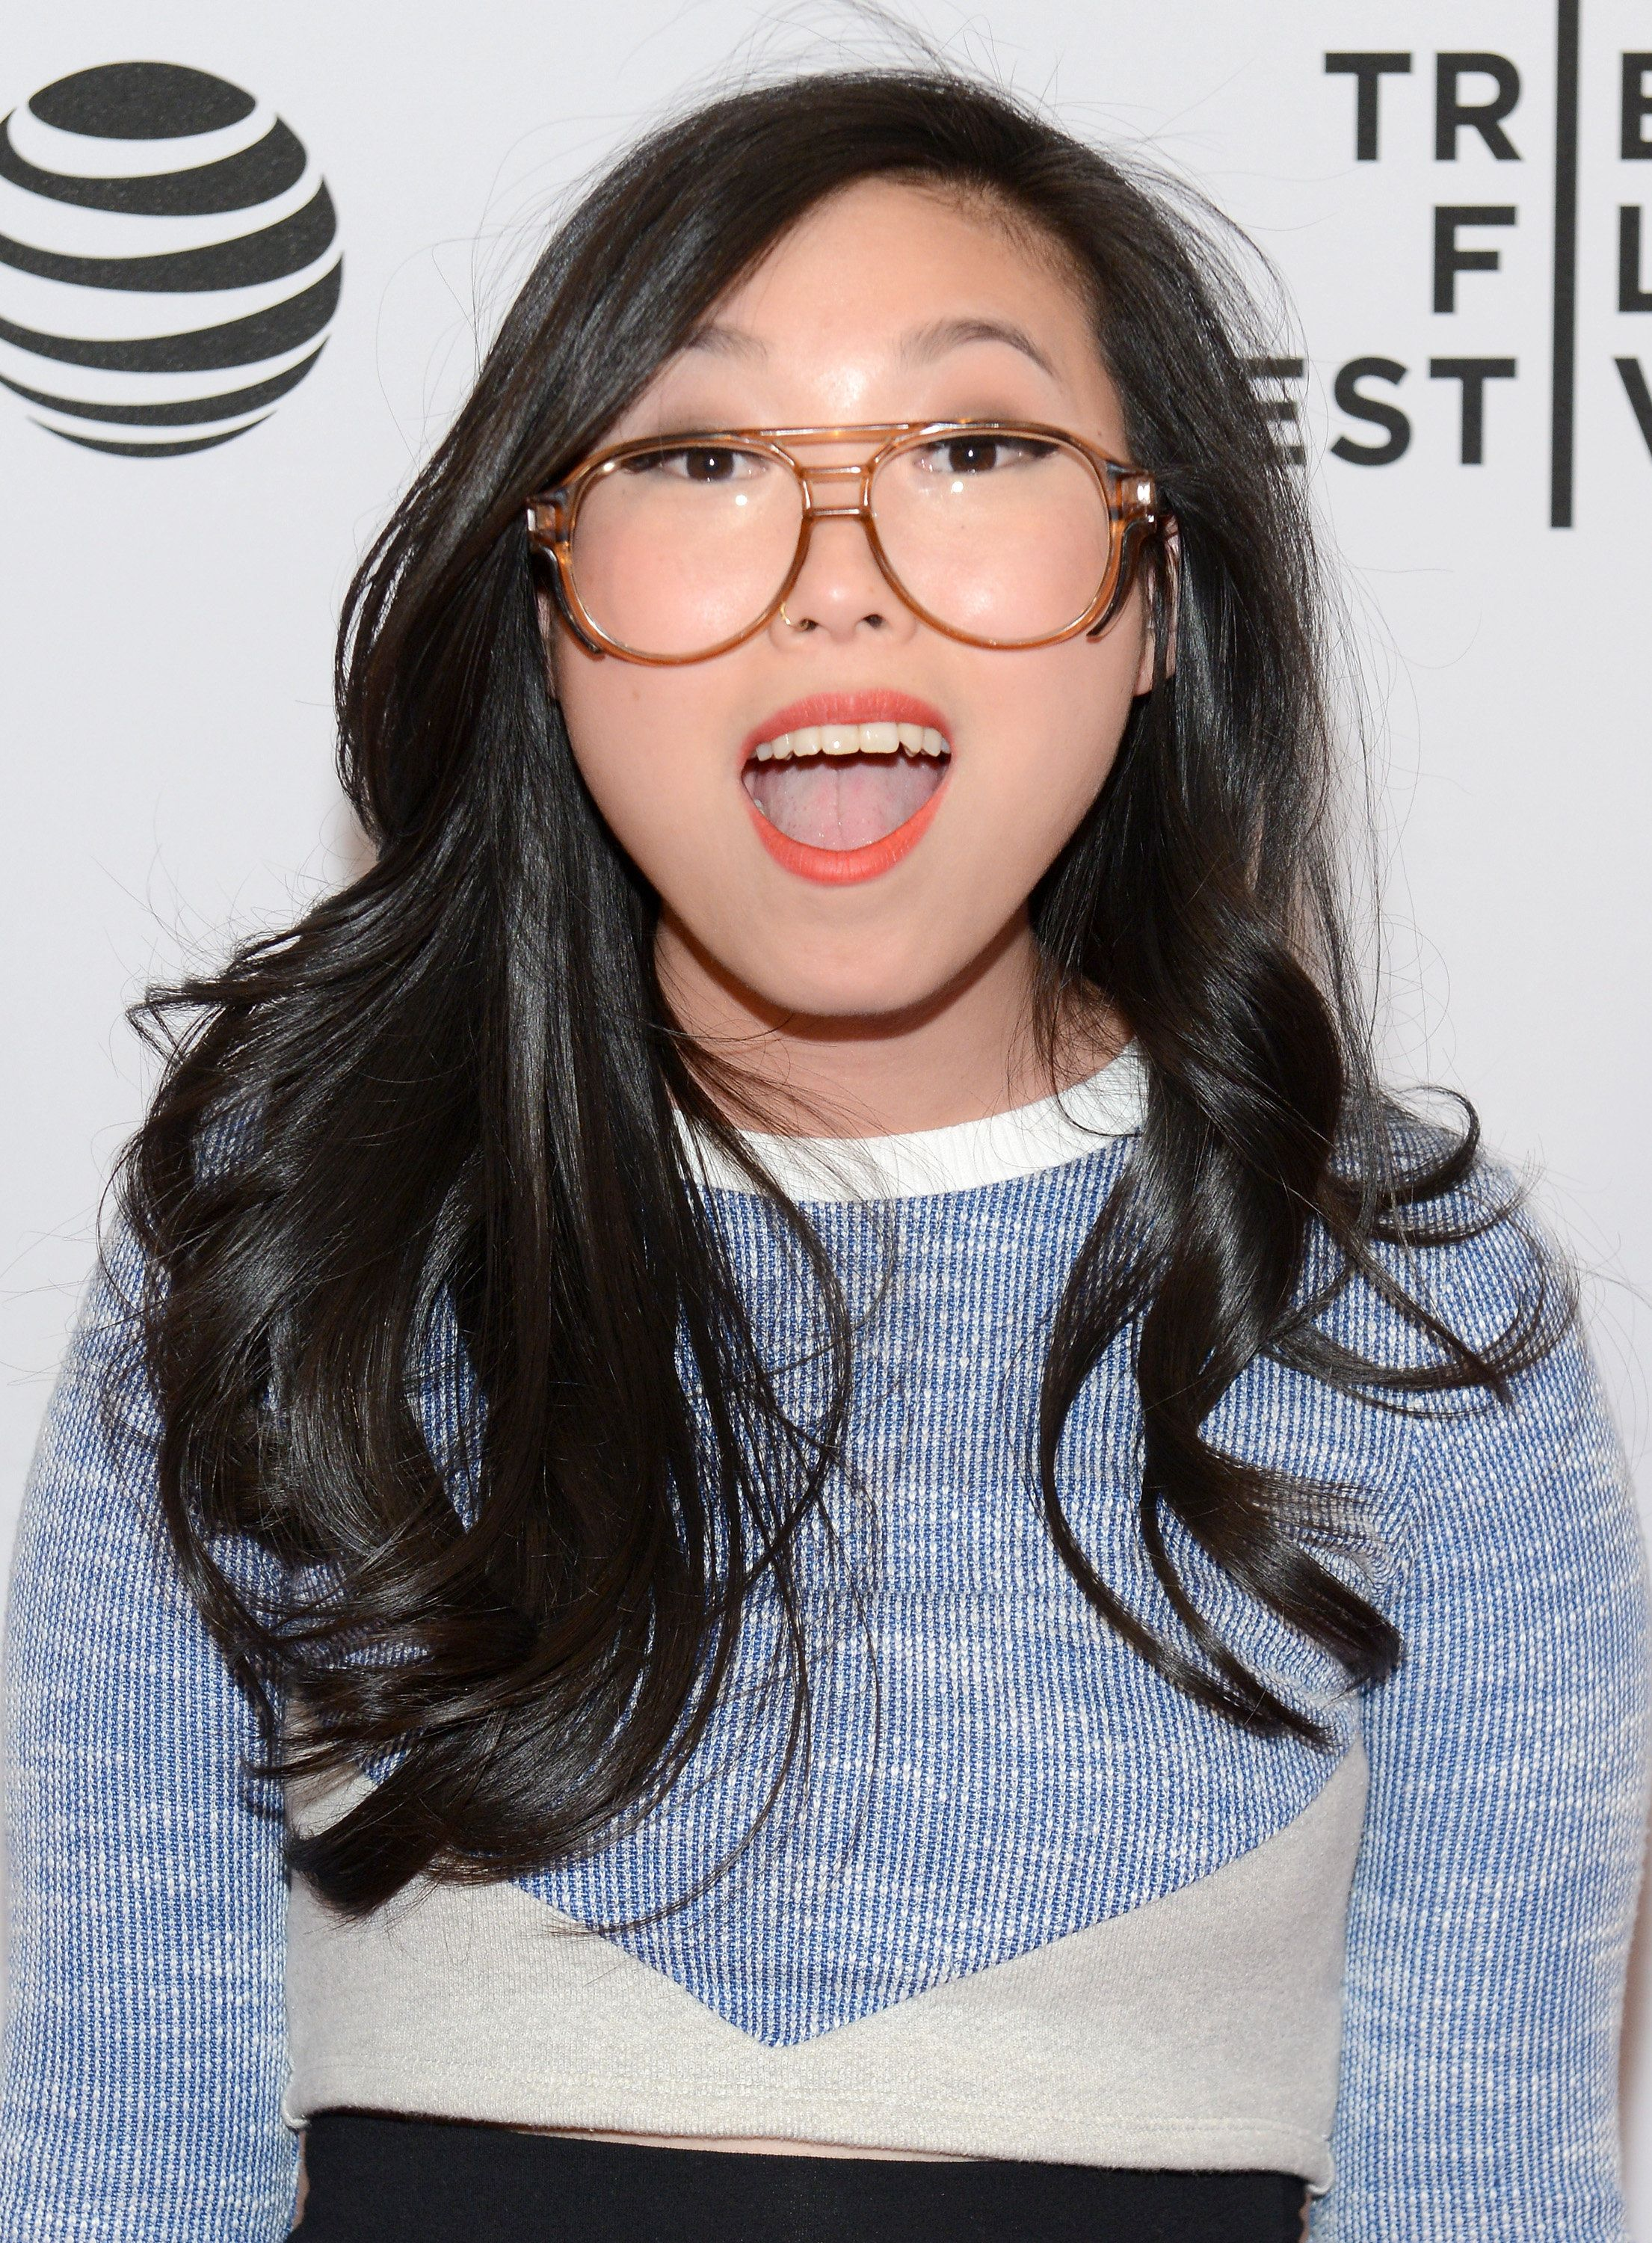 NEW YORK, NY - APRIL 16:  Rapper Awkwafina attends the 'Bad Rap' Premiere during the 2016 Tribeca Film Festival at Chelsea Bow Tie Cinemas on April 16, 2016 in New York City.  (Photo by Noam Galai/Getty Images for Tribeca Film Festival)